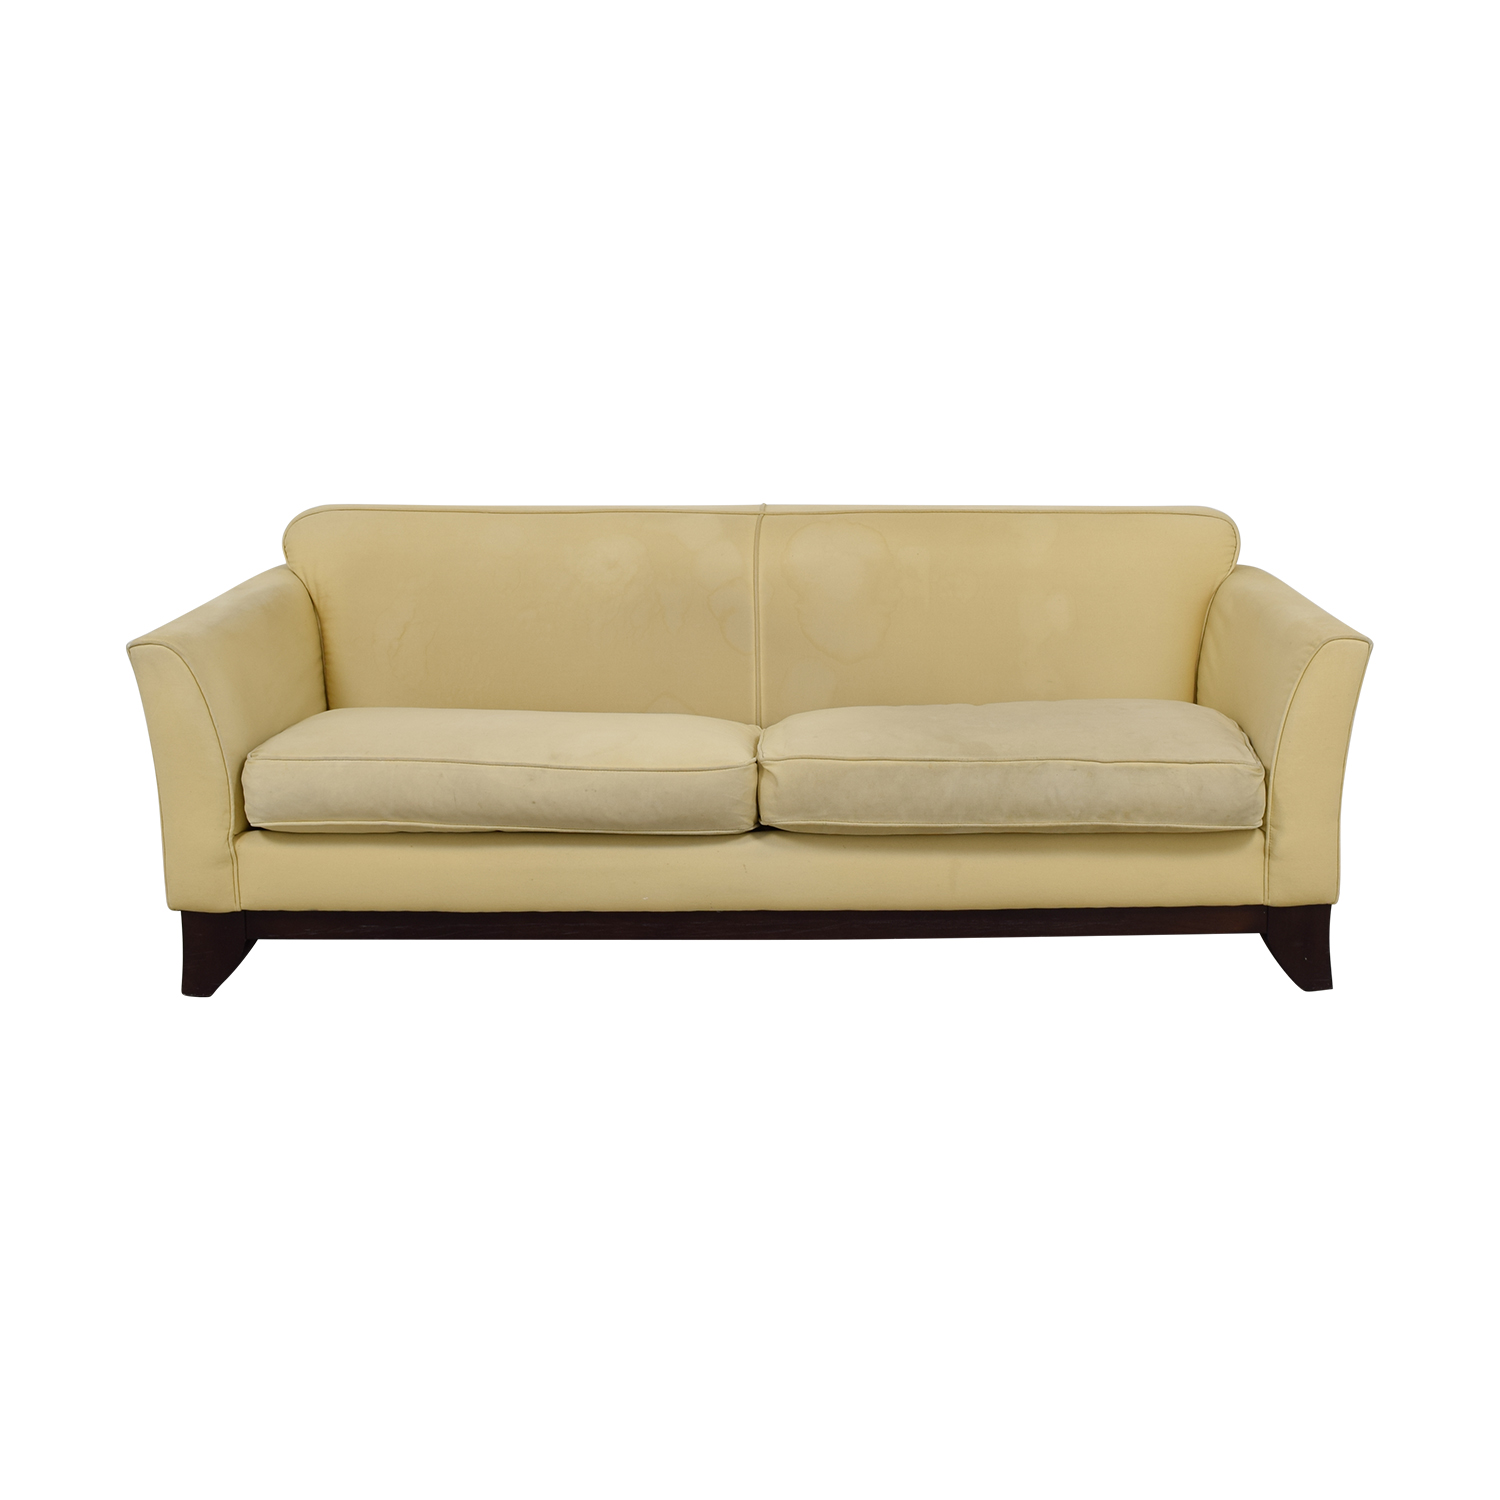 Pottery Barn Beige Upholstered Two Cushion Sofa Second Hand